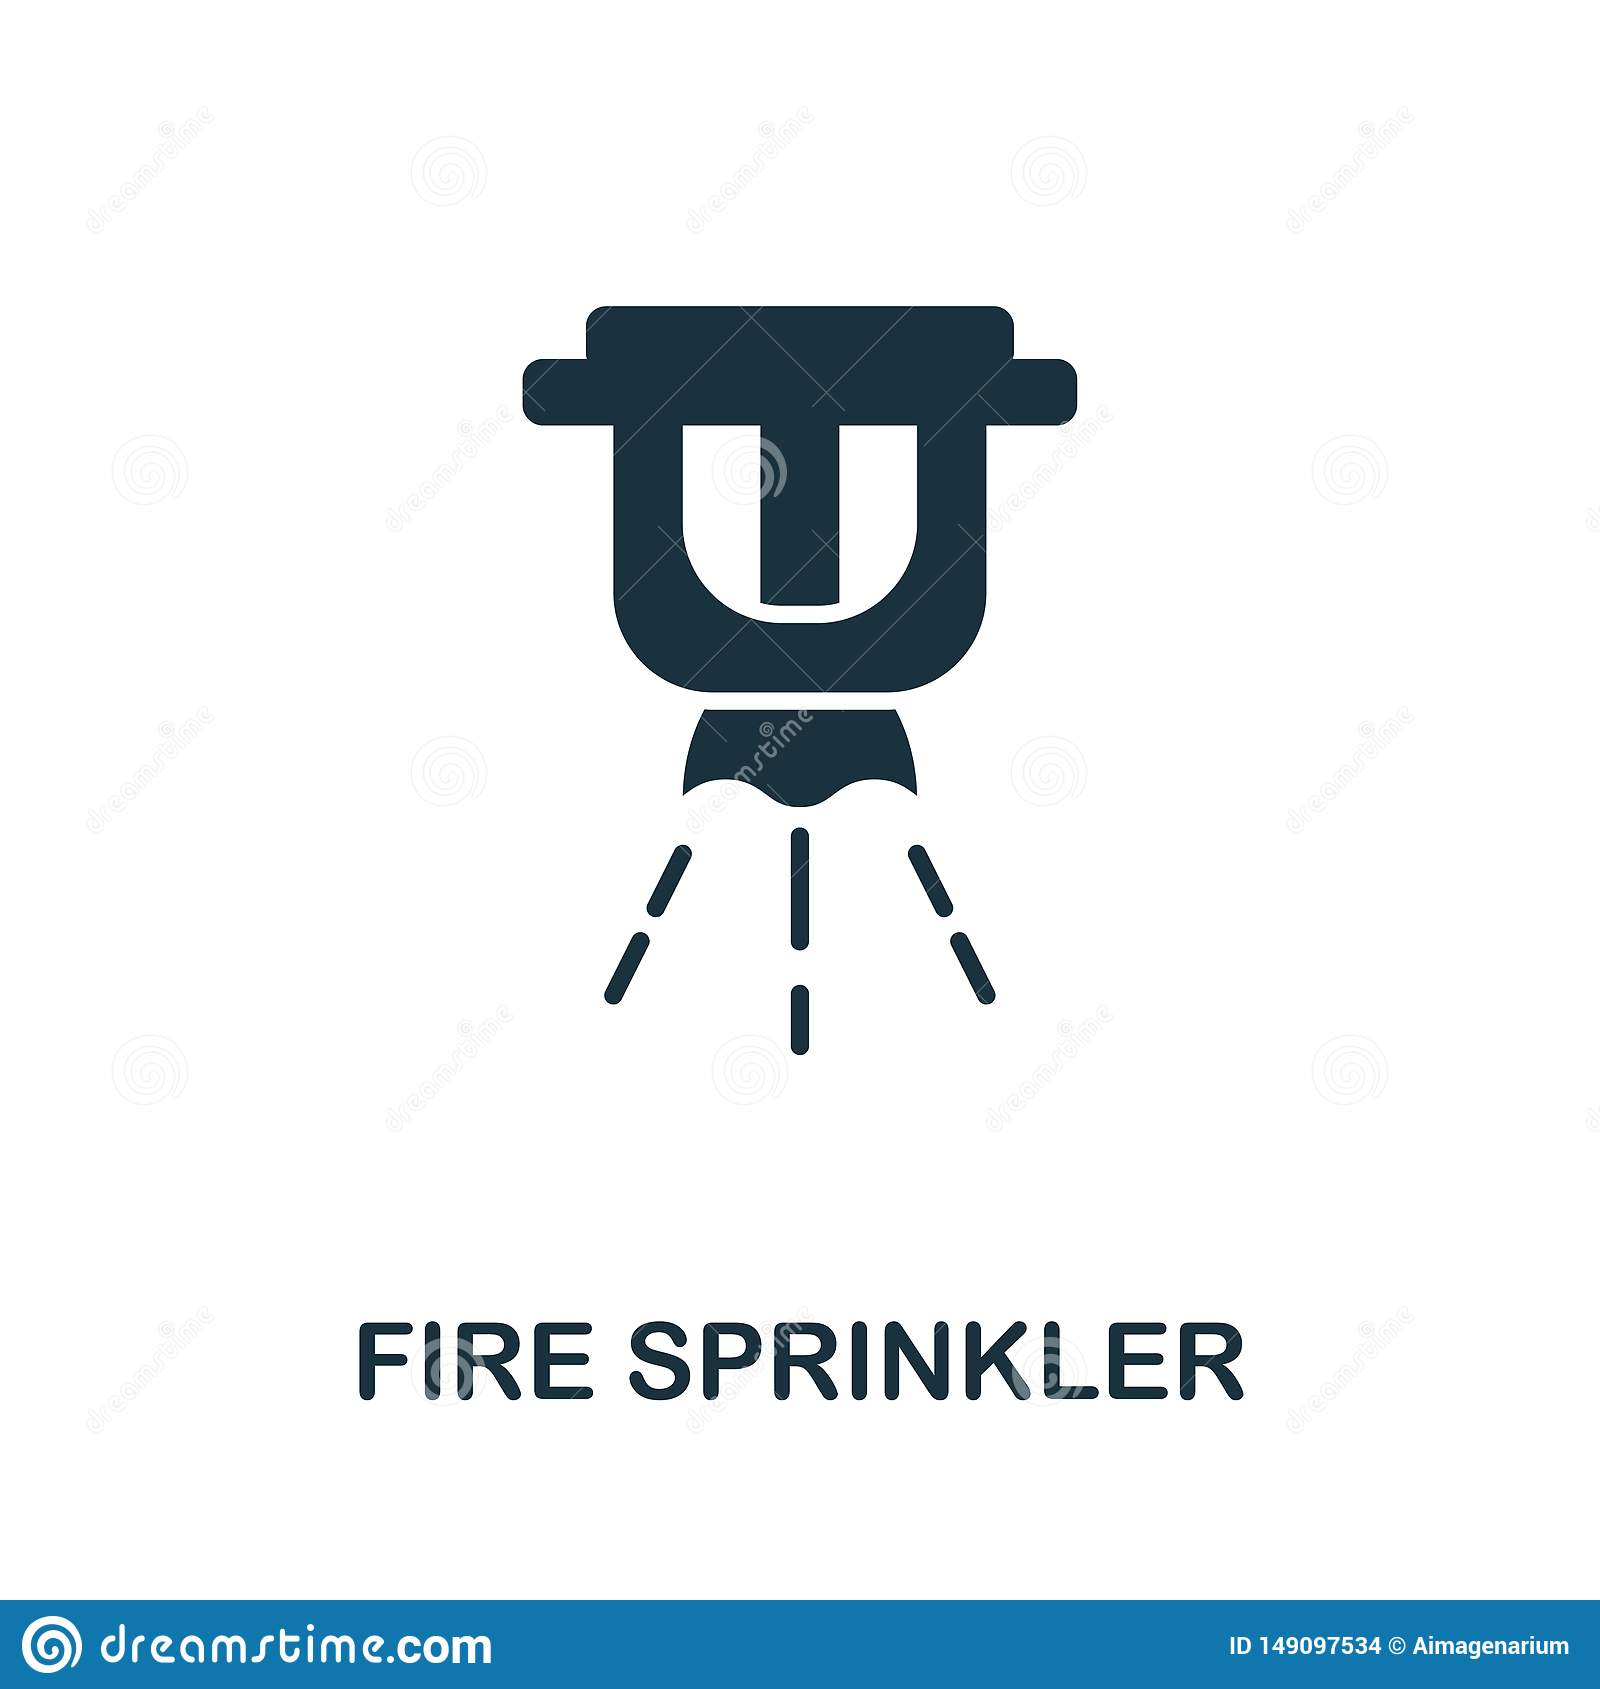 Fire Sprinkler Icon Creative Element Design From Fire Safety Icons Collection Pixel Perfect Fire Sprinkler Icon For Stock Vector Illustration Of Isolated Equipment 149097534